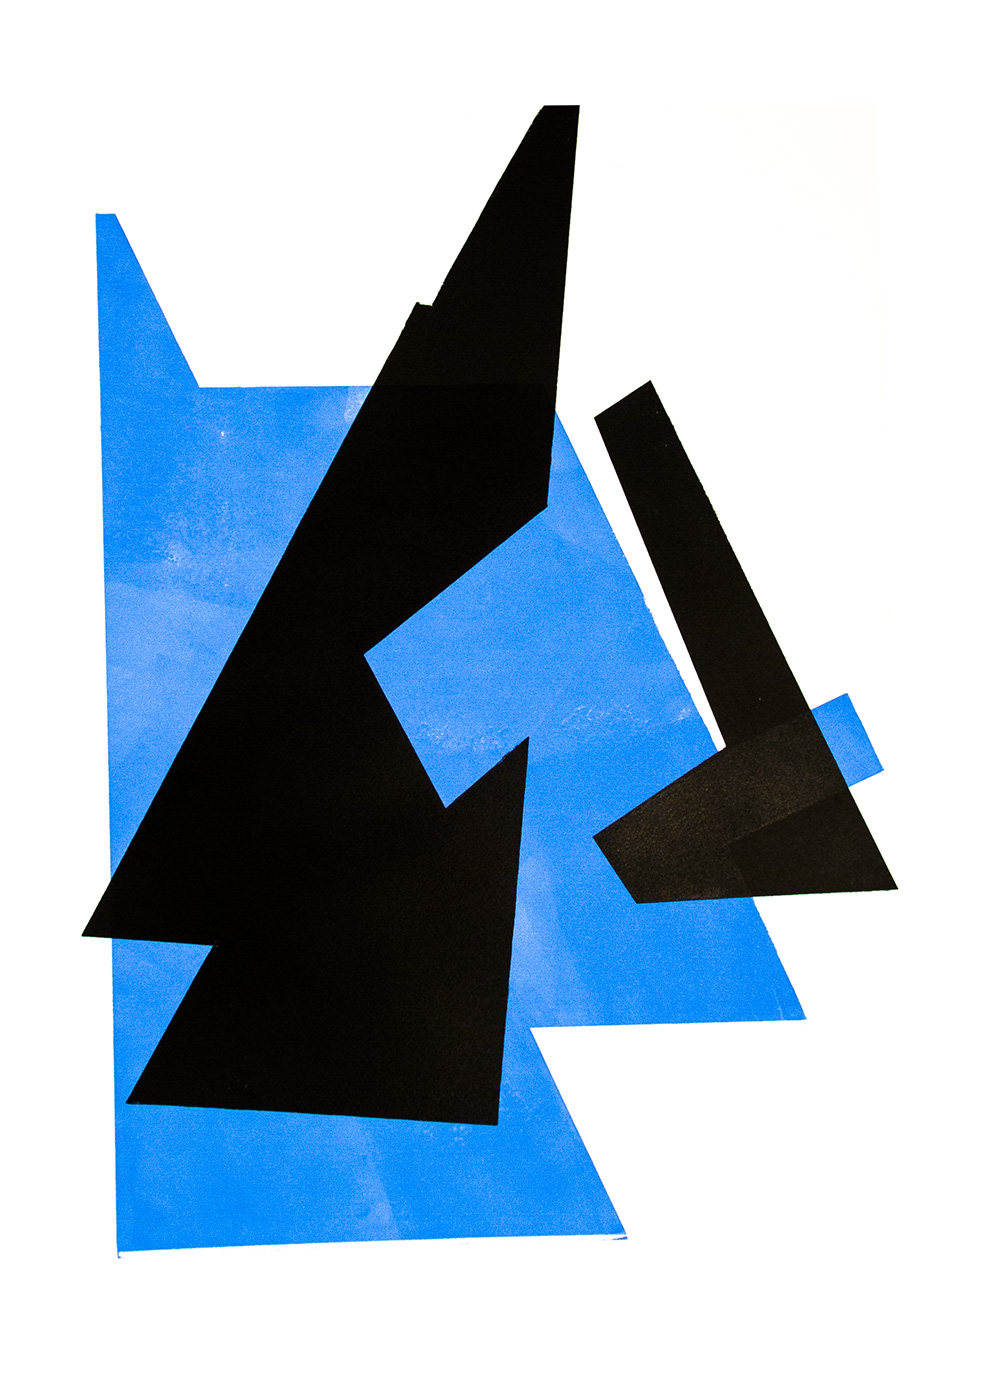 Untitled, 2014, Relief print on paper, 75 cm × 55 cm